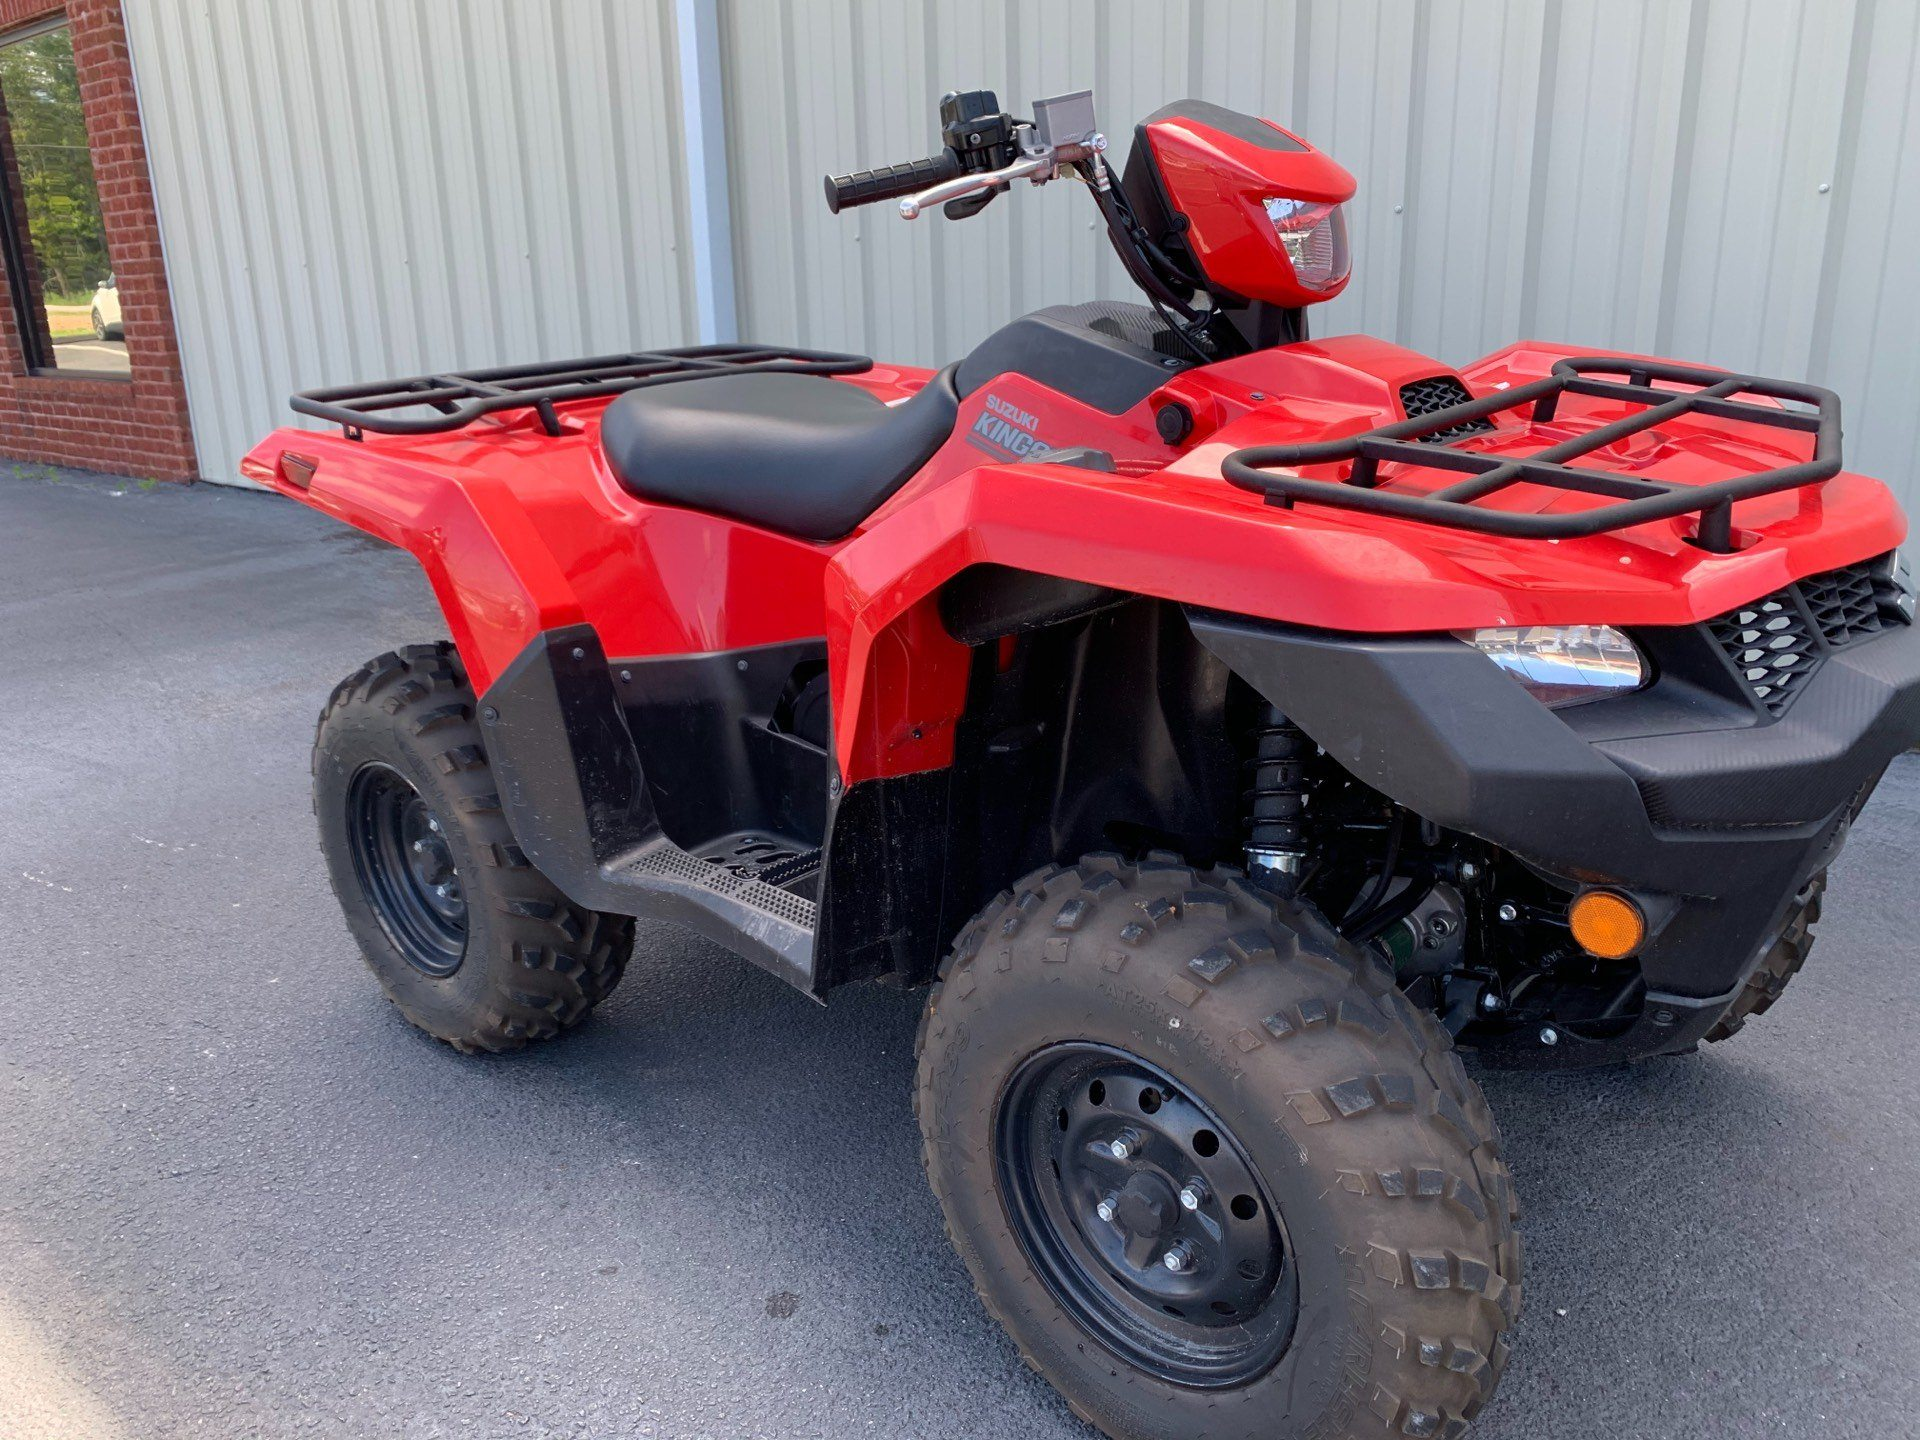 2019 Suzuki KingQuad 500AXi in Statesboro, Georgia - Photo 1